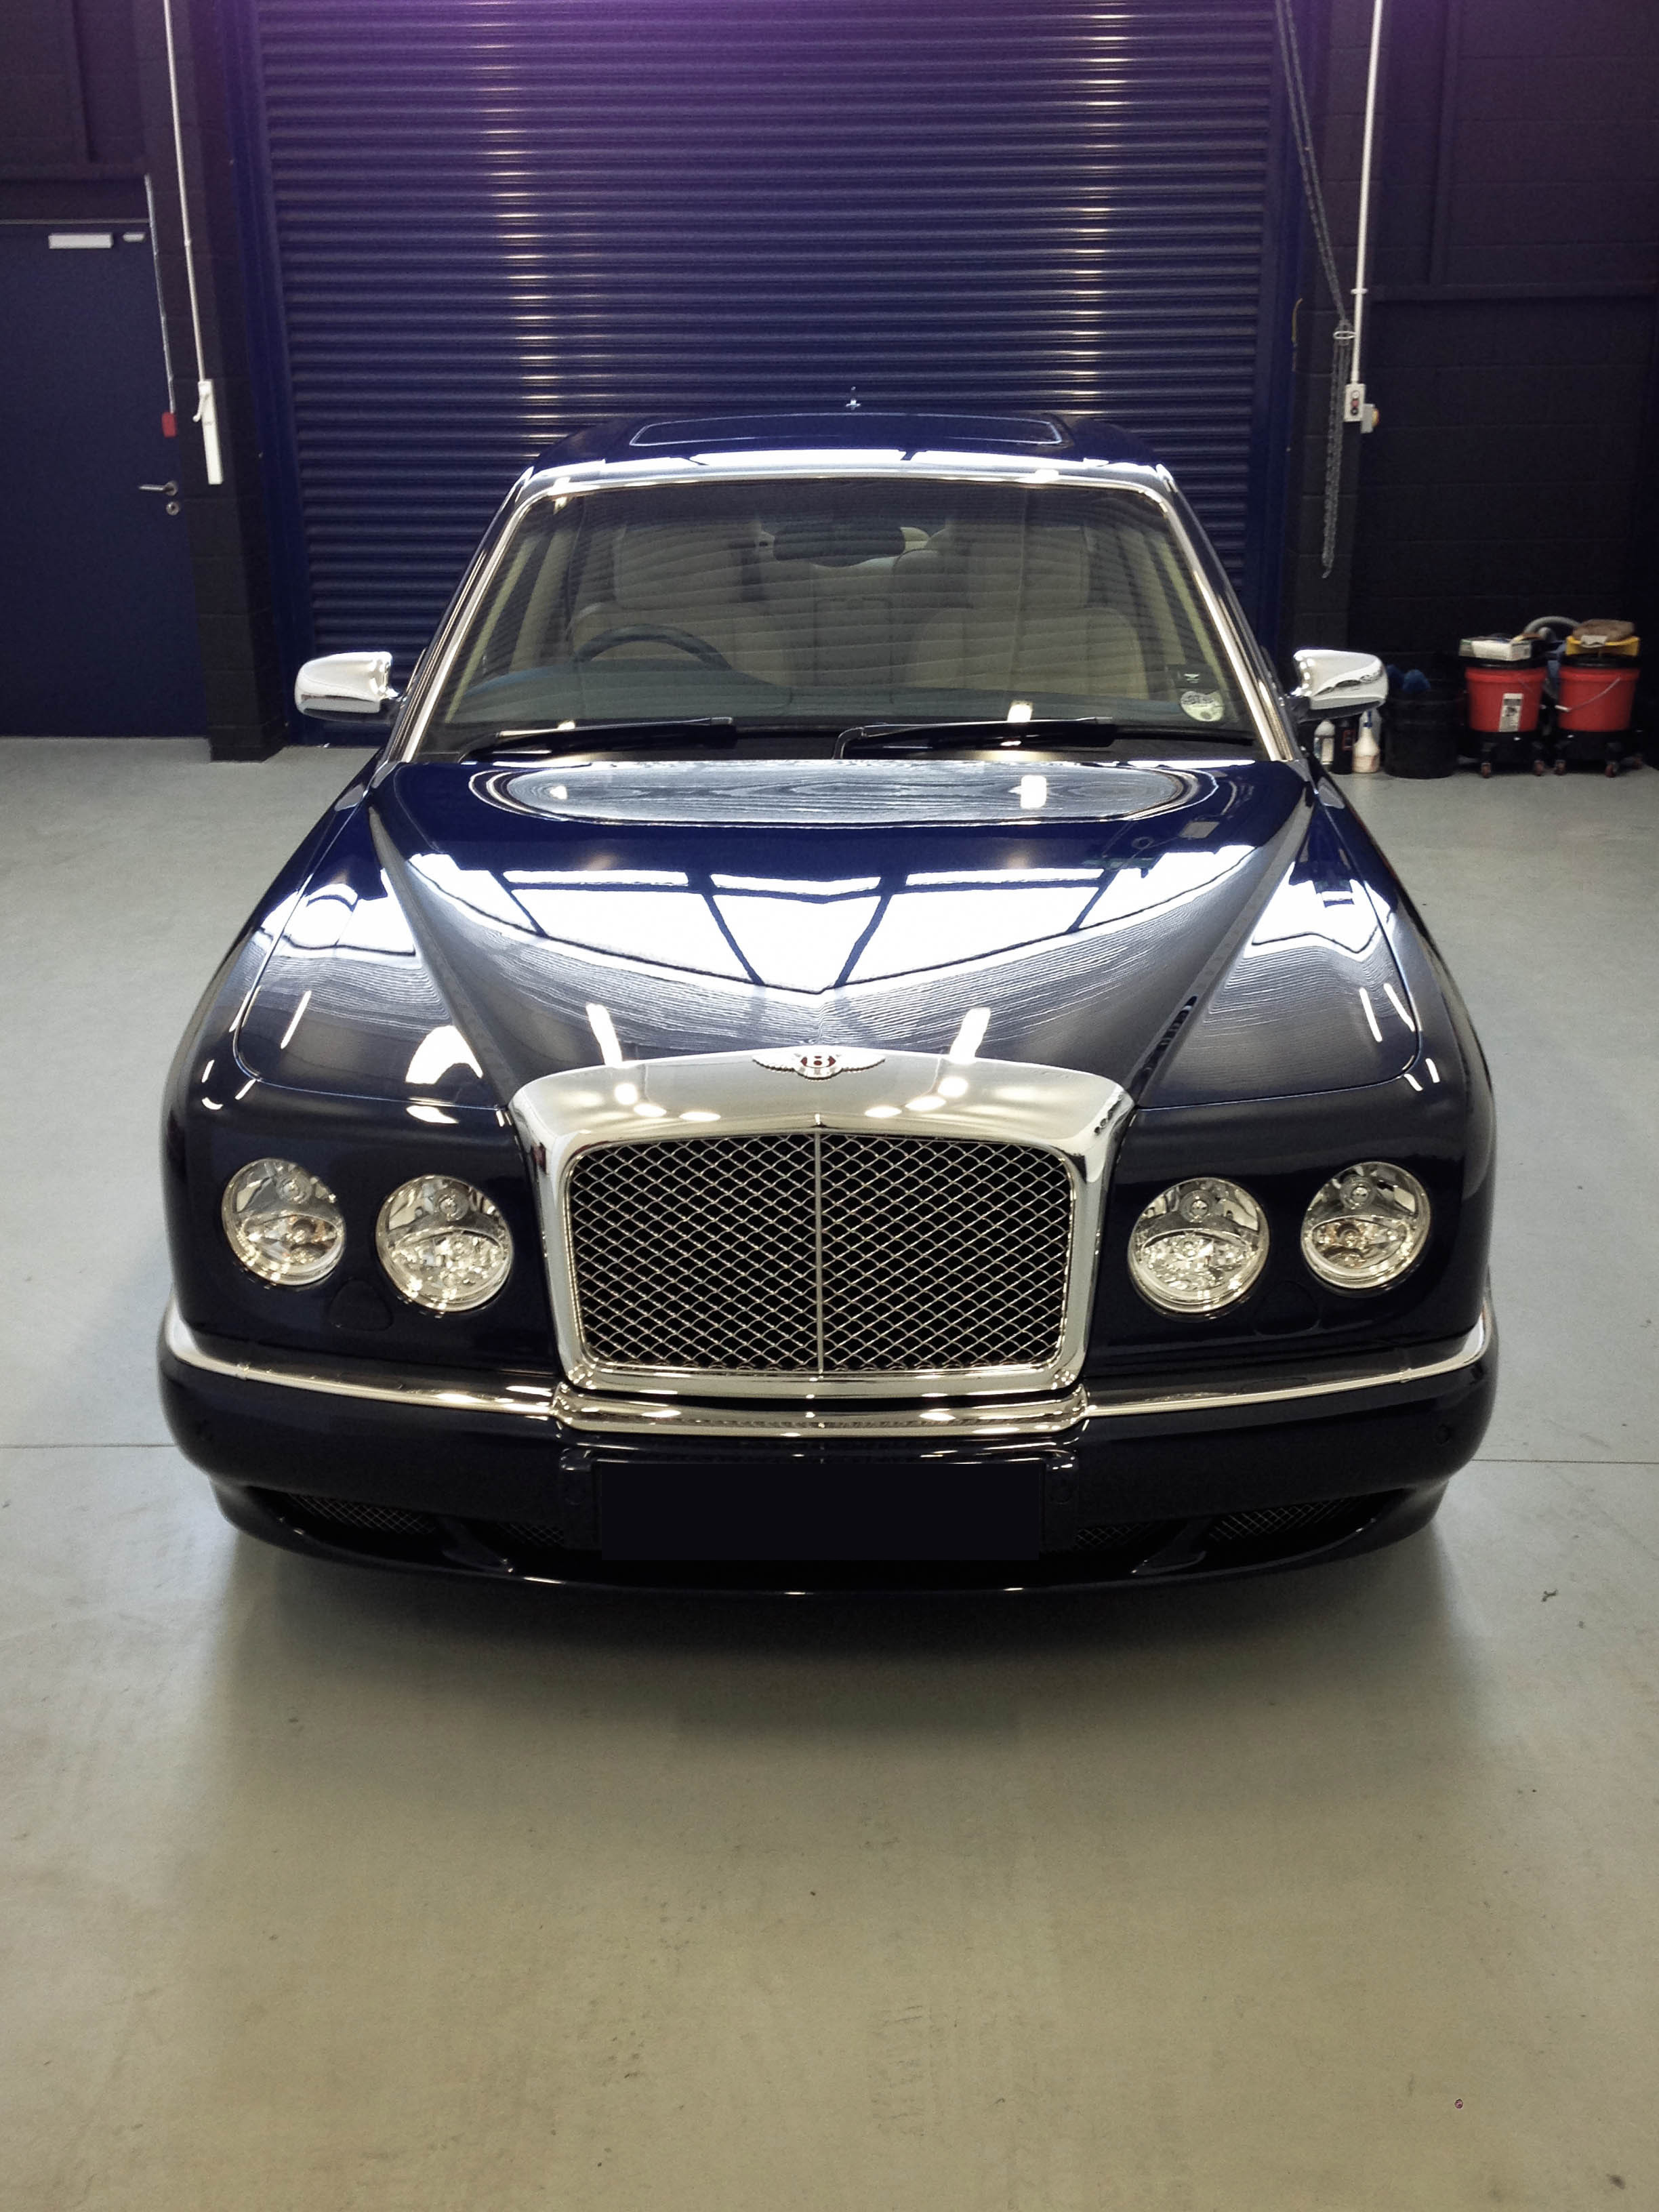 Bentley Arnage – Head on